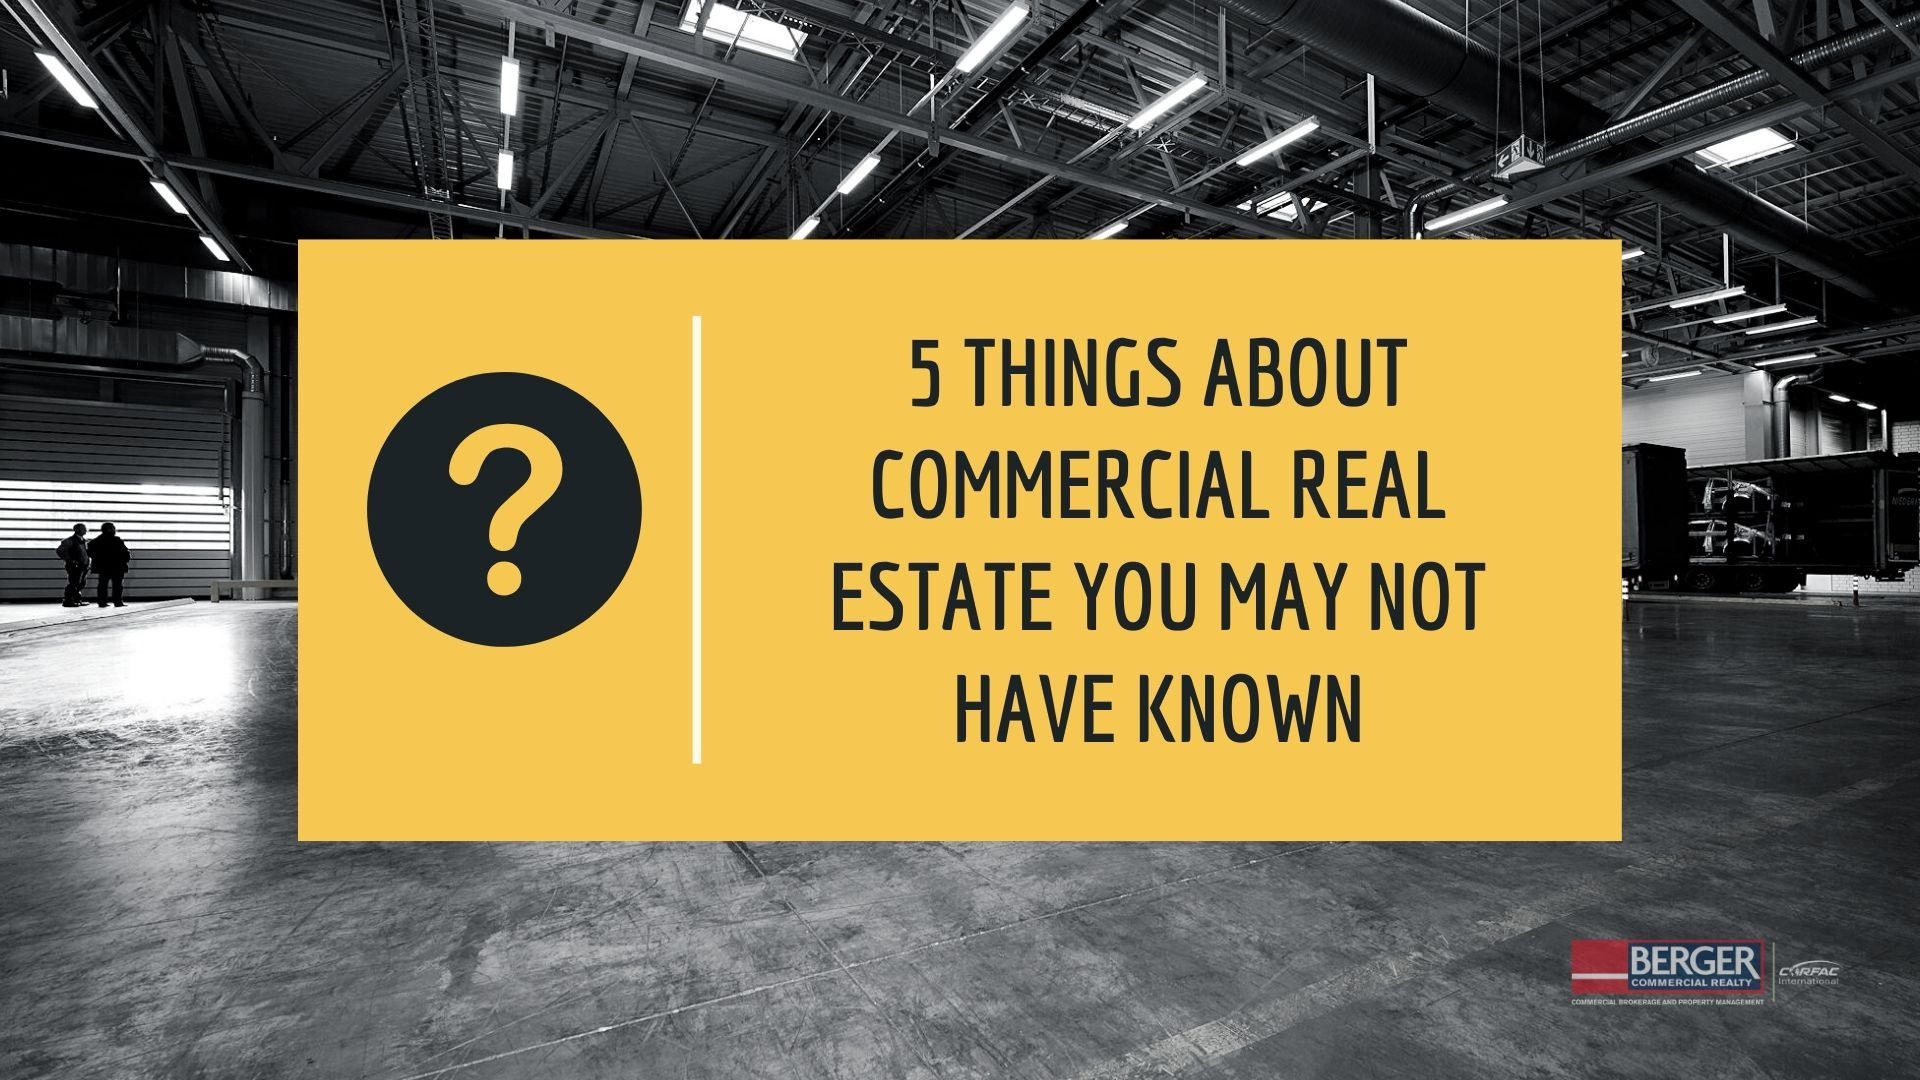 Five Things About Commercial Real Estate You May Not Have Known